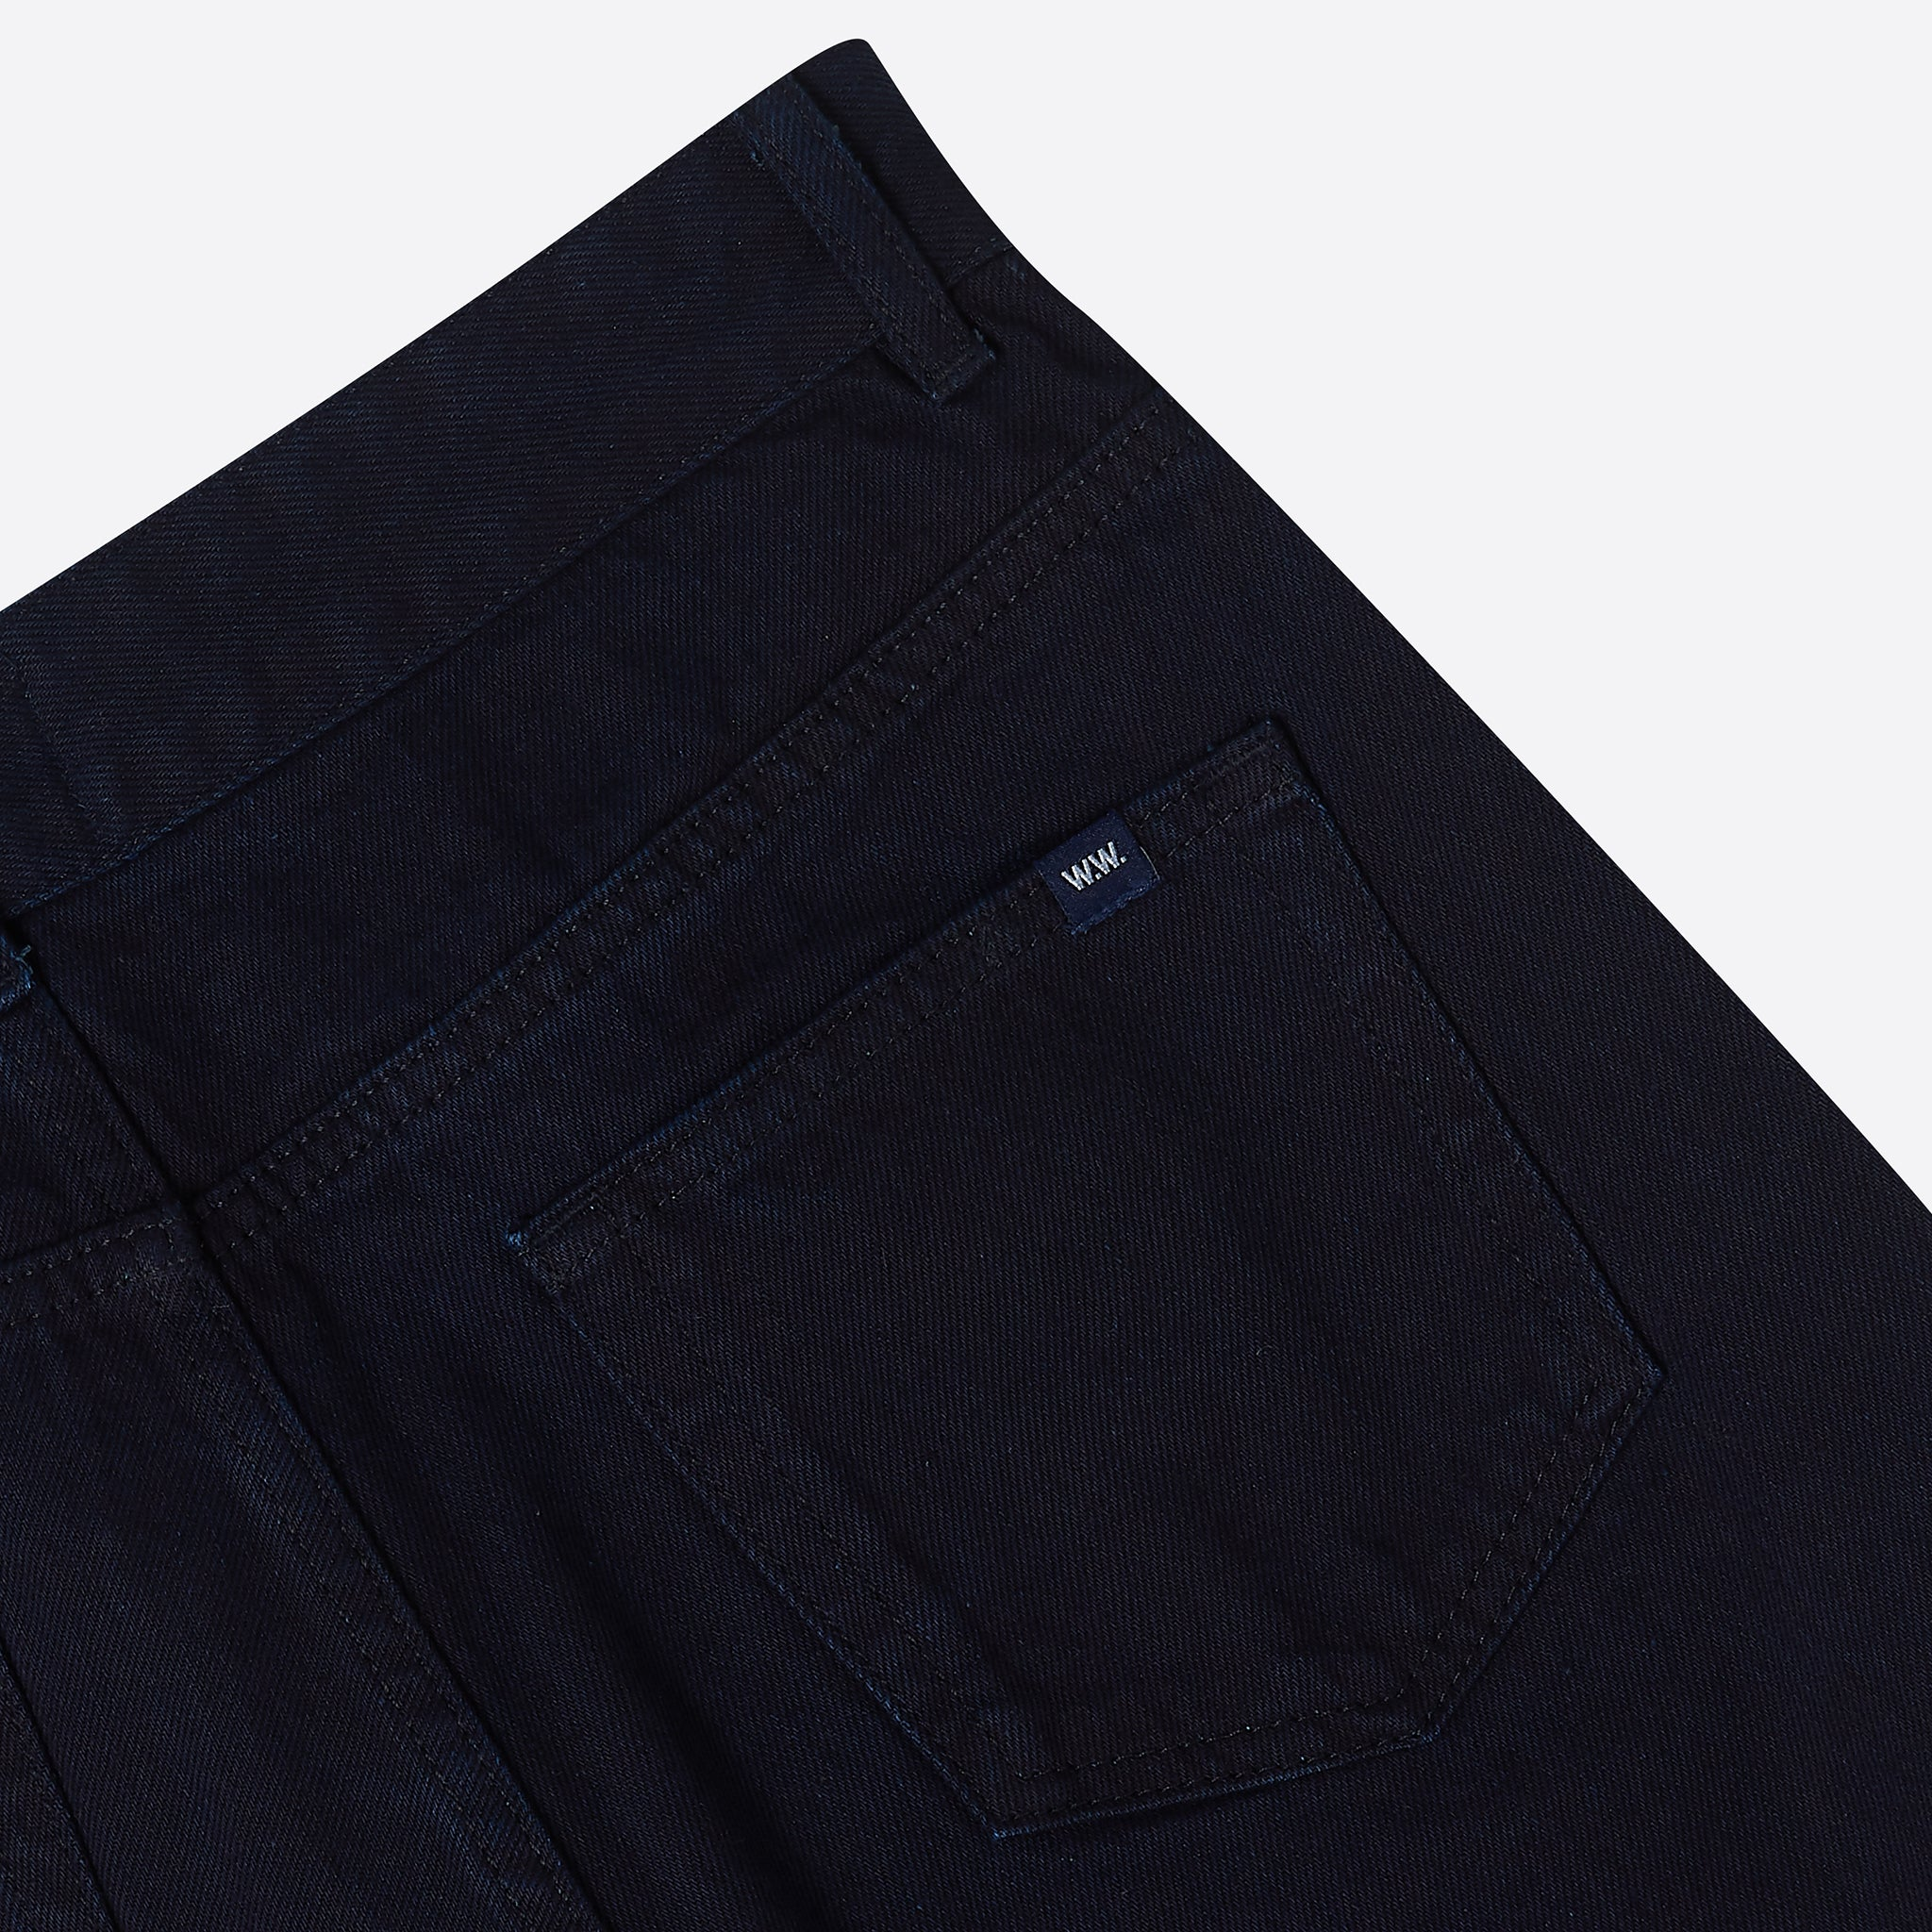 Wood Wood Ilo Jeans in Dark Rinse